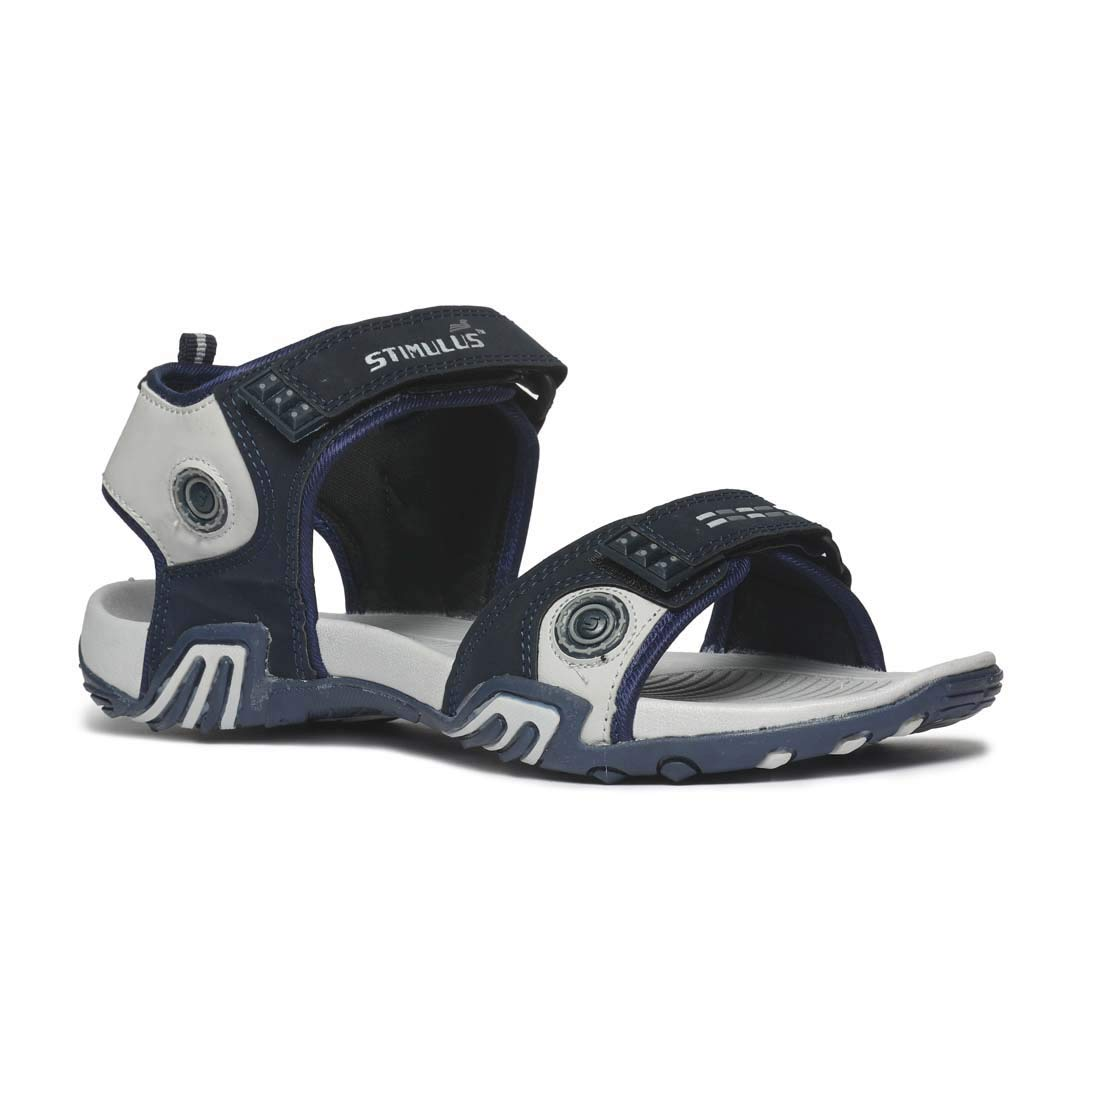 0200b5003ea233 PARAGON Men Blue & Grey Stimulus Sports Sandals: Buy Online at Low Prices  in India - Amazon.in